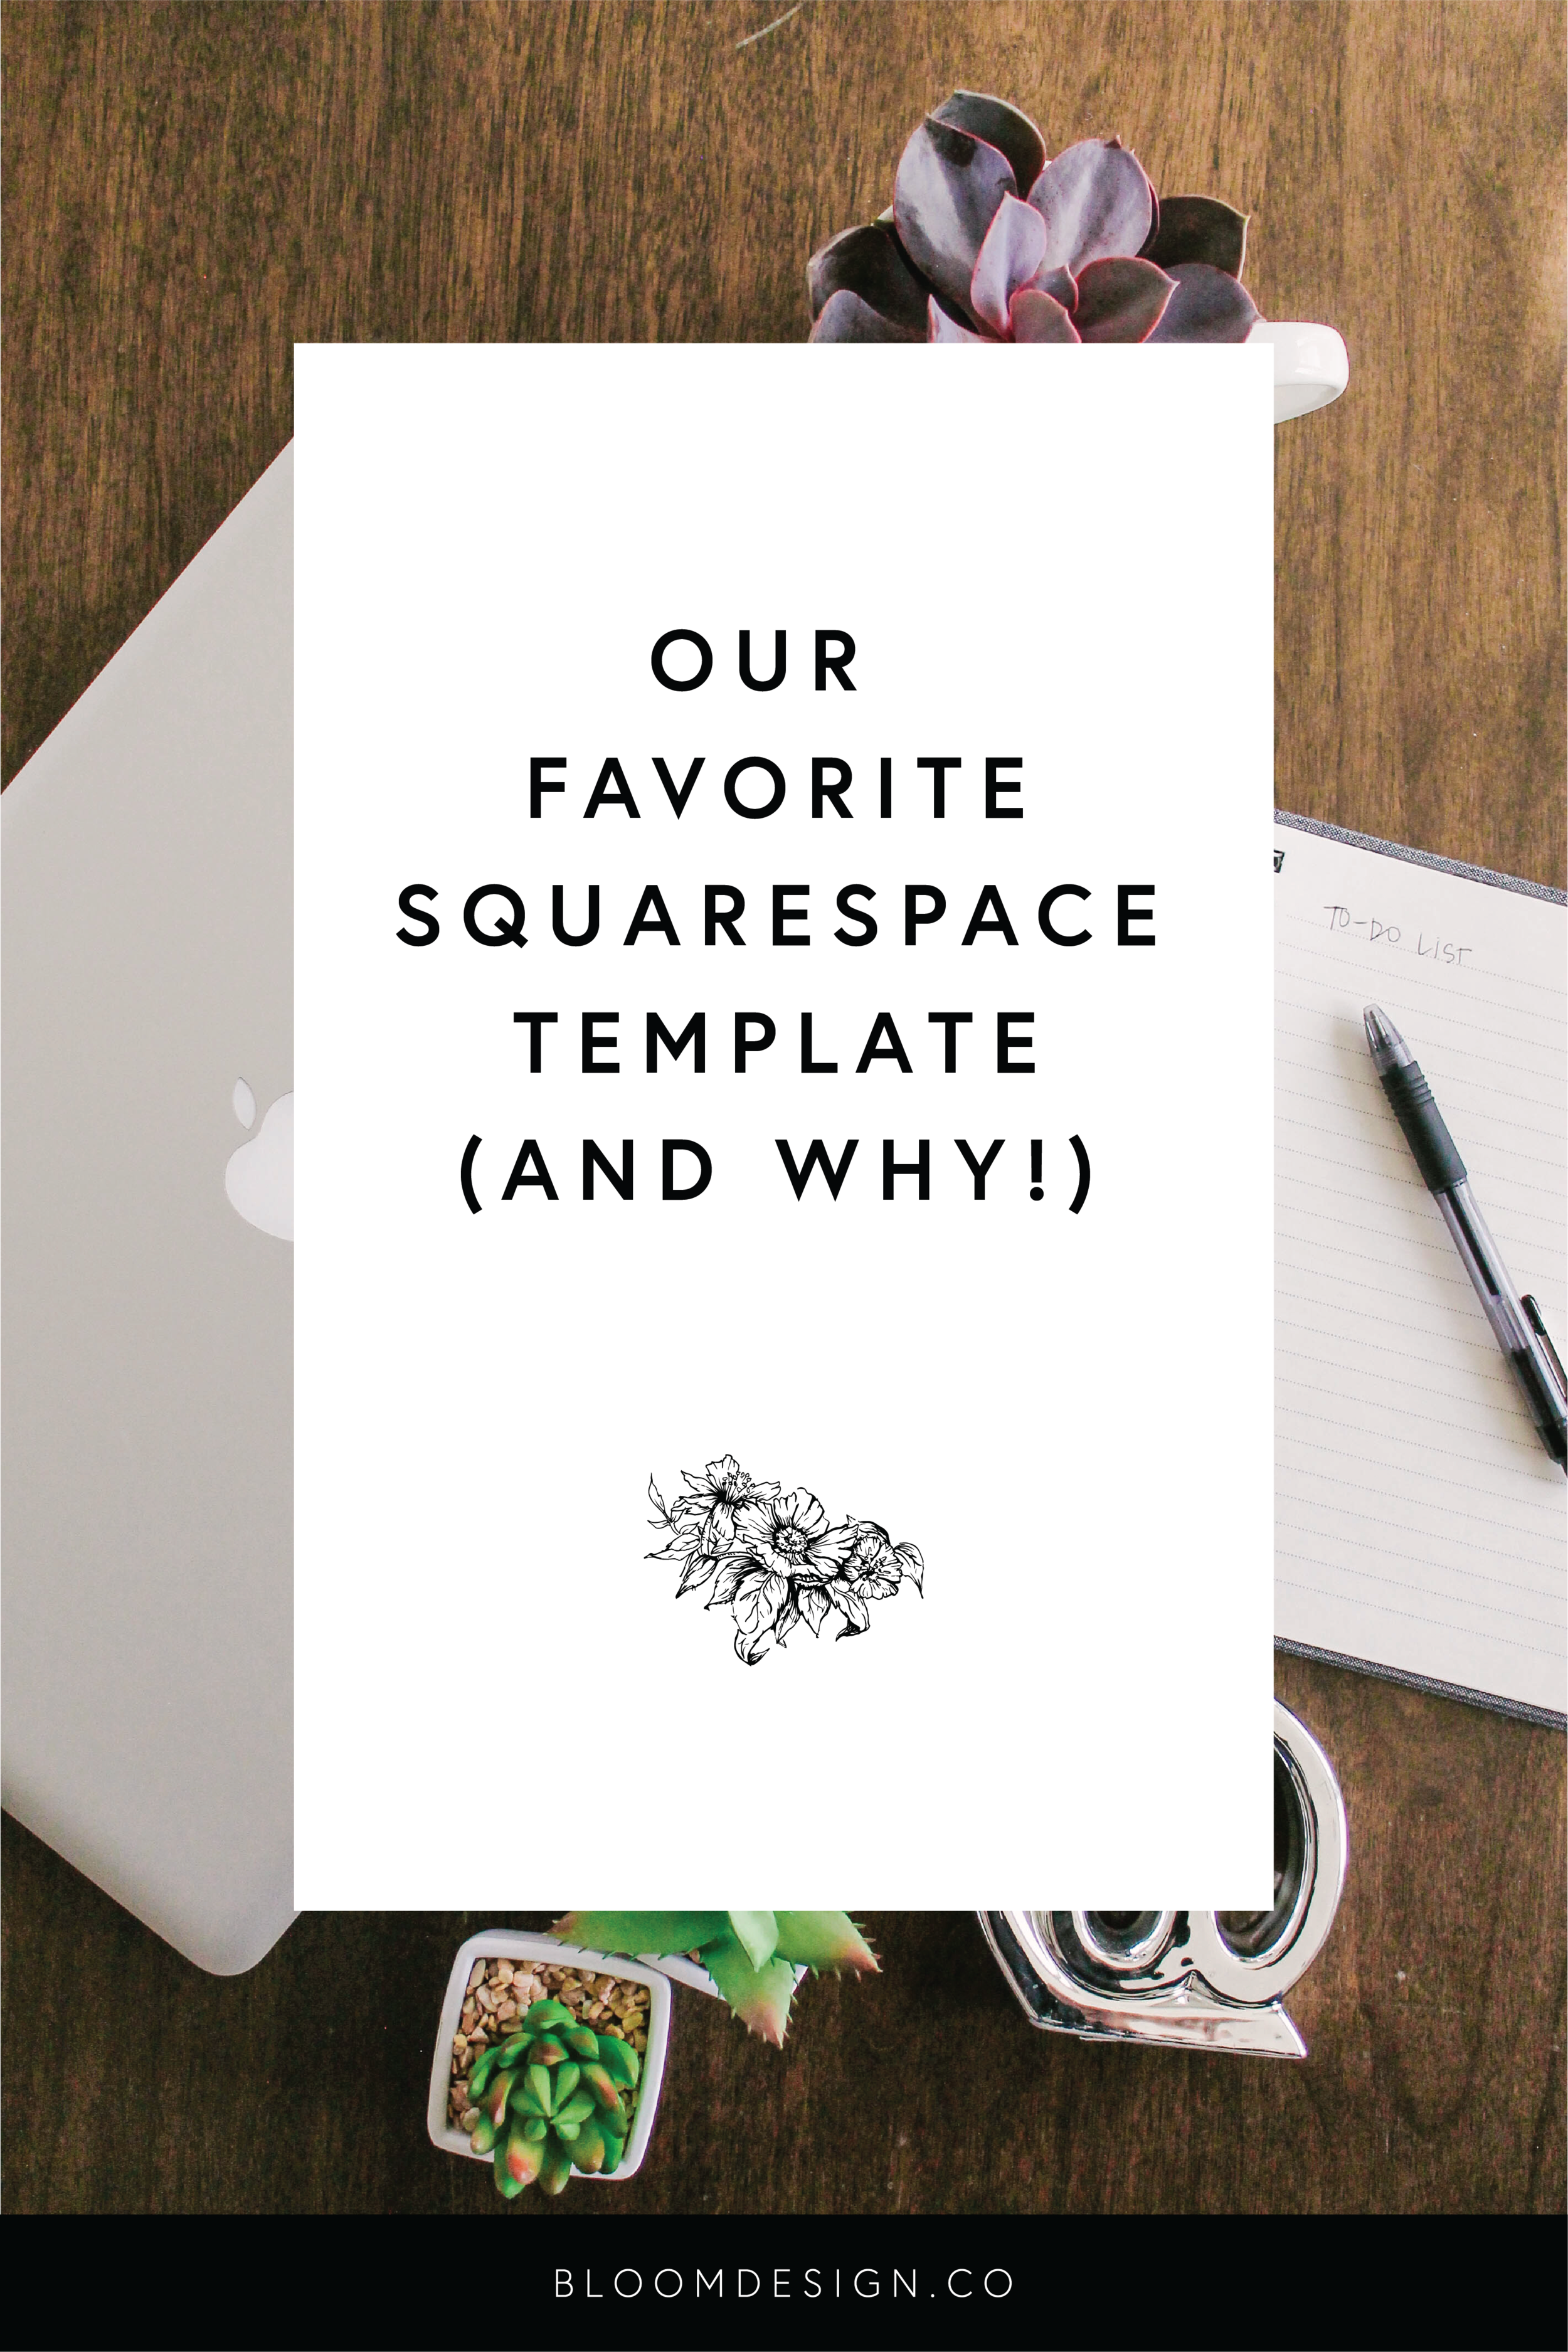 If you're thinking about designing your own Squarespace site, let me just tell you: there are a ton of template designs and options to choose from, and before you waste too much time scrolling through all the beautiful, customizable templates, we have a favorite template that'd we'd recommend you start with! It's easy-to-use, utilizes the most versatile and unique functions, and will help your brand stand out on the best website building platform there is! #girlboss #bossbabe #momboss #sidehustle #squarespace #websitedesign #DIYwebsite #webdesign #squarespacedesigner #squarespacecircle #smallbusiness #shopsmall #sidegig #bizowner #wahm #workathomemom